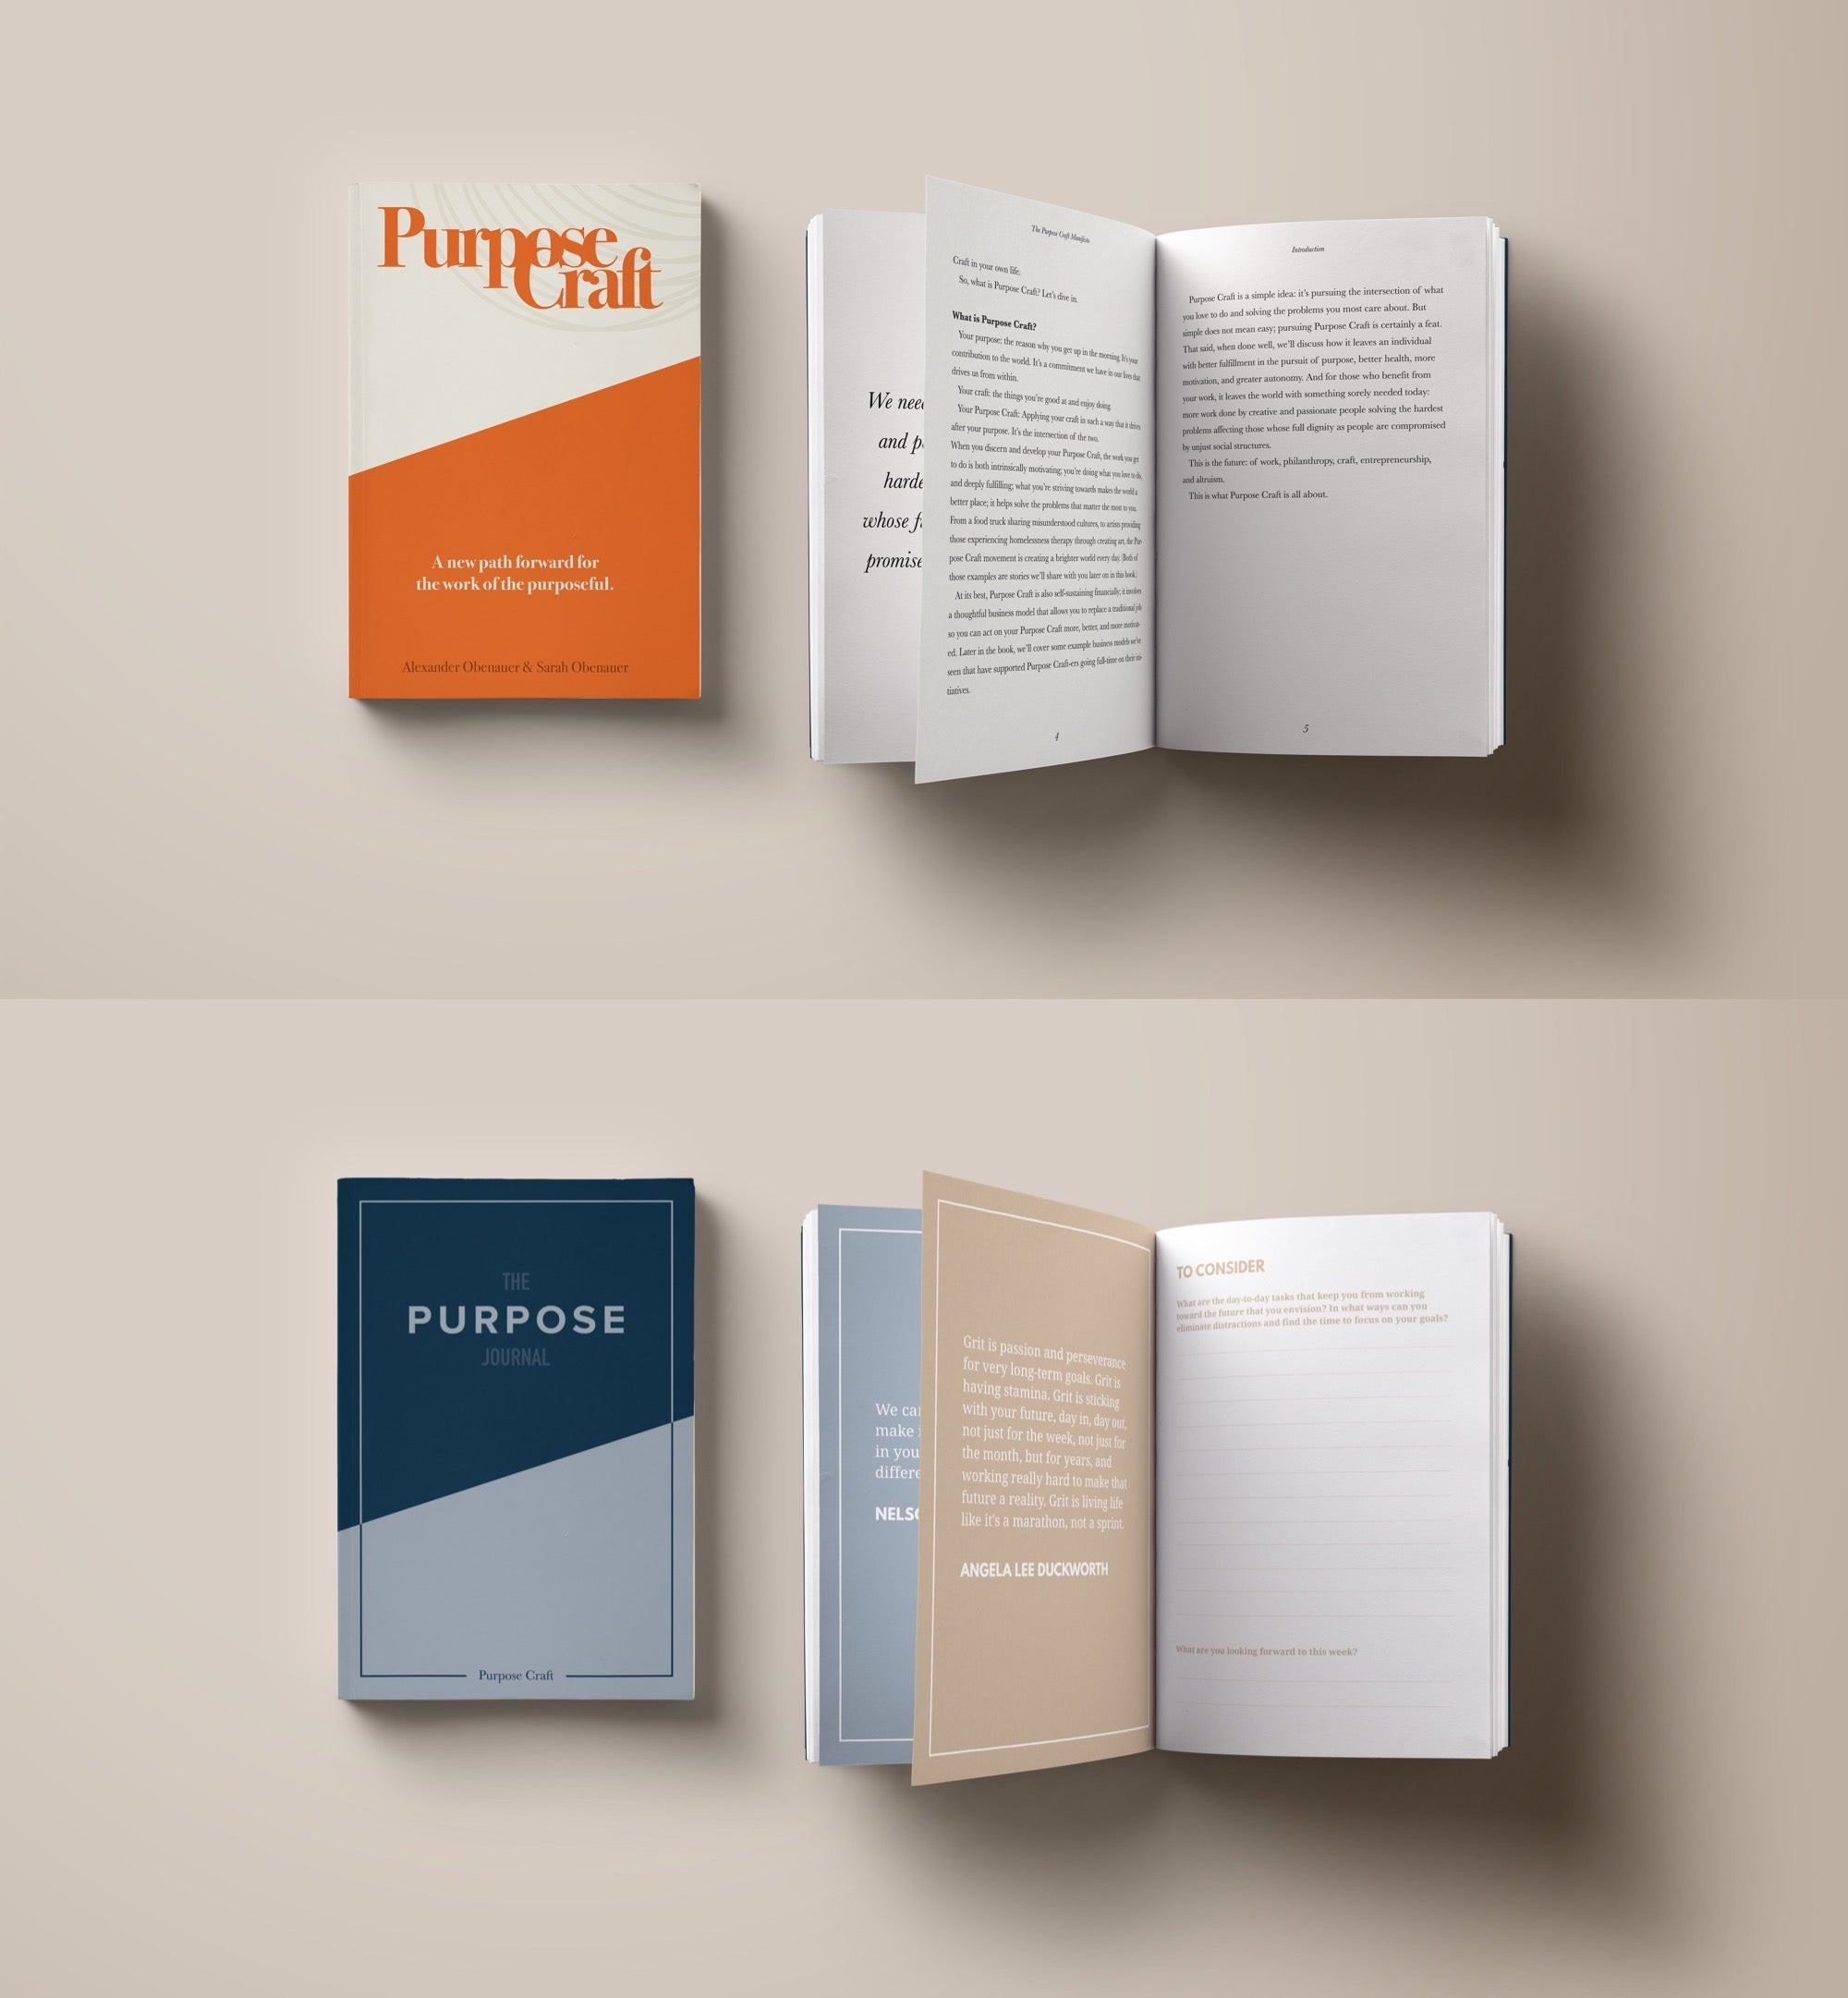 Special Bundle: The Purpose Journal + The Purpose Craft Manifesto